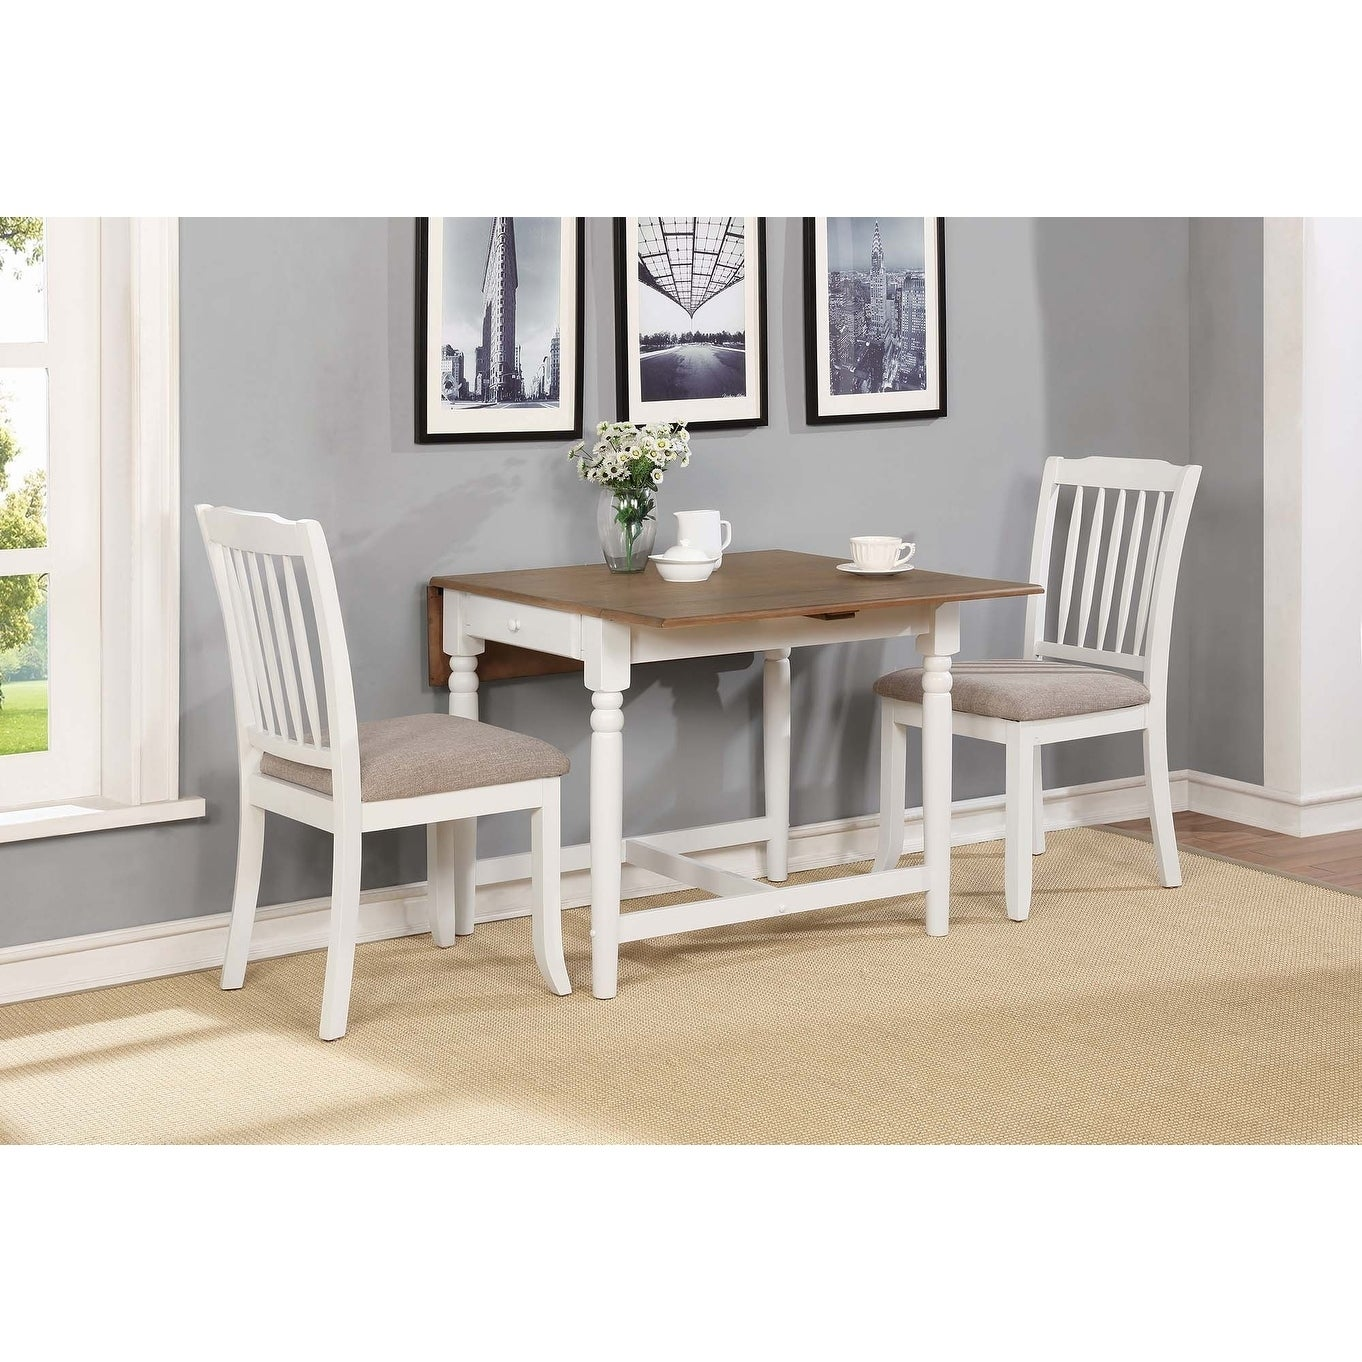 Shop Hesperia Pale Ale And White Rectangular Dining Table With Drop